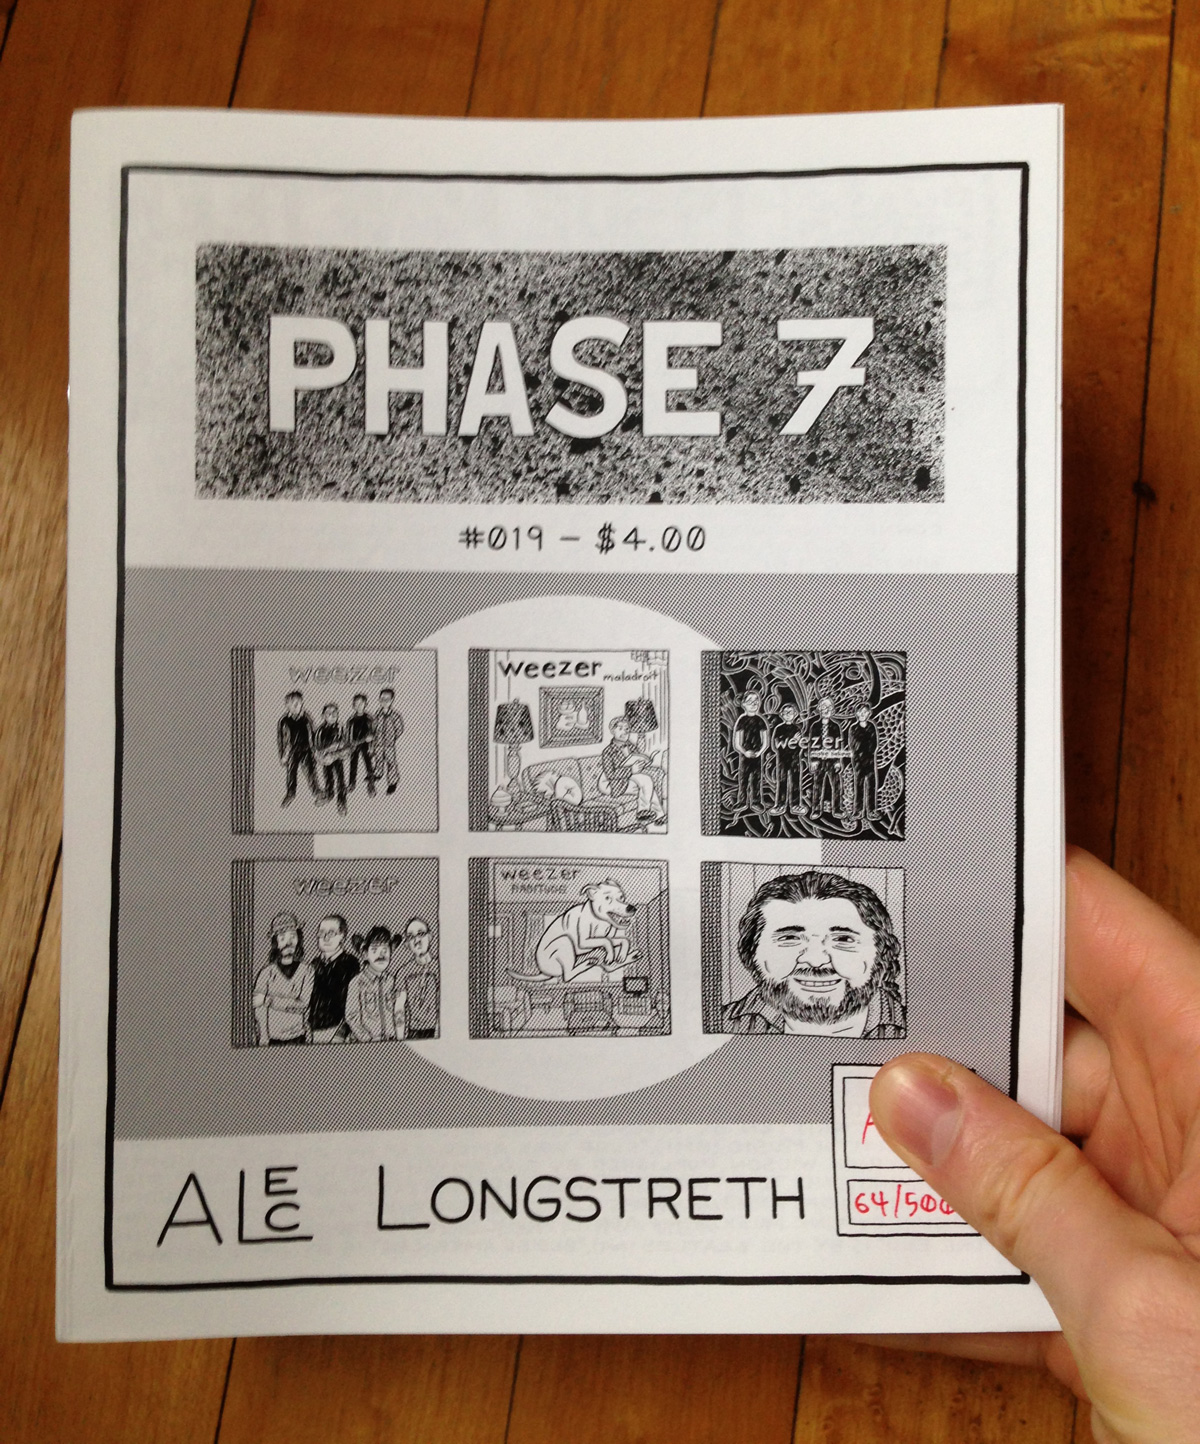 Phase 7 No. 019 by Alec Longstreth